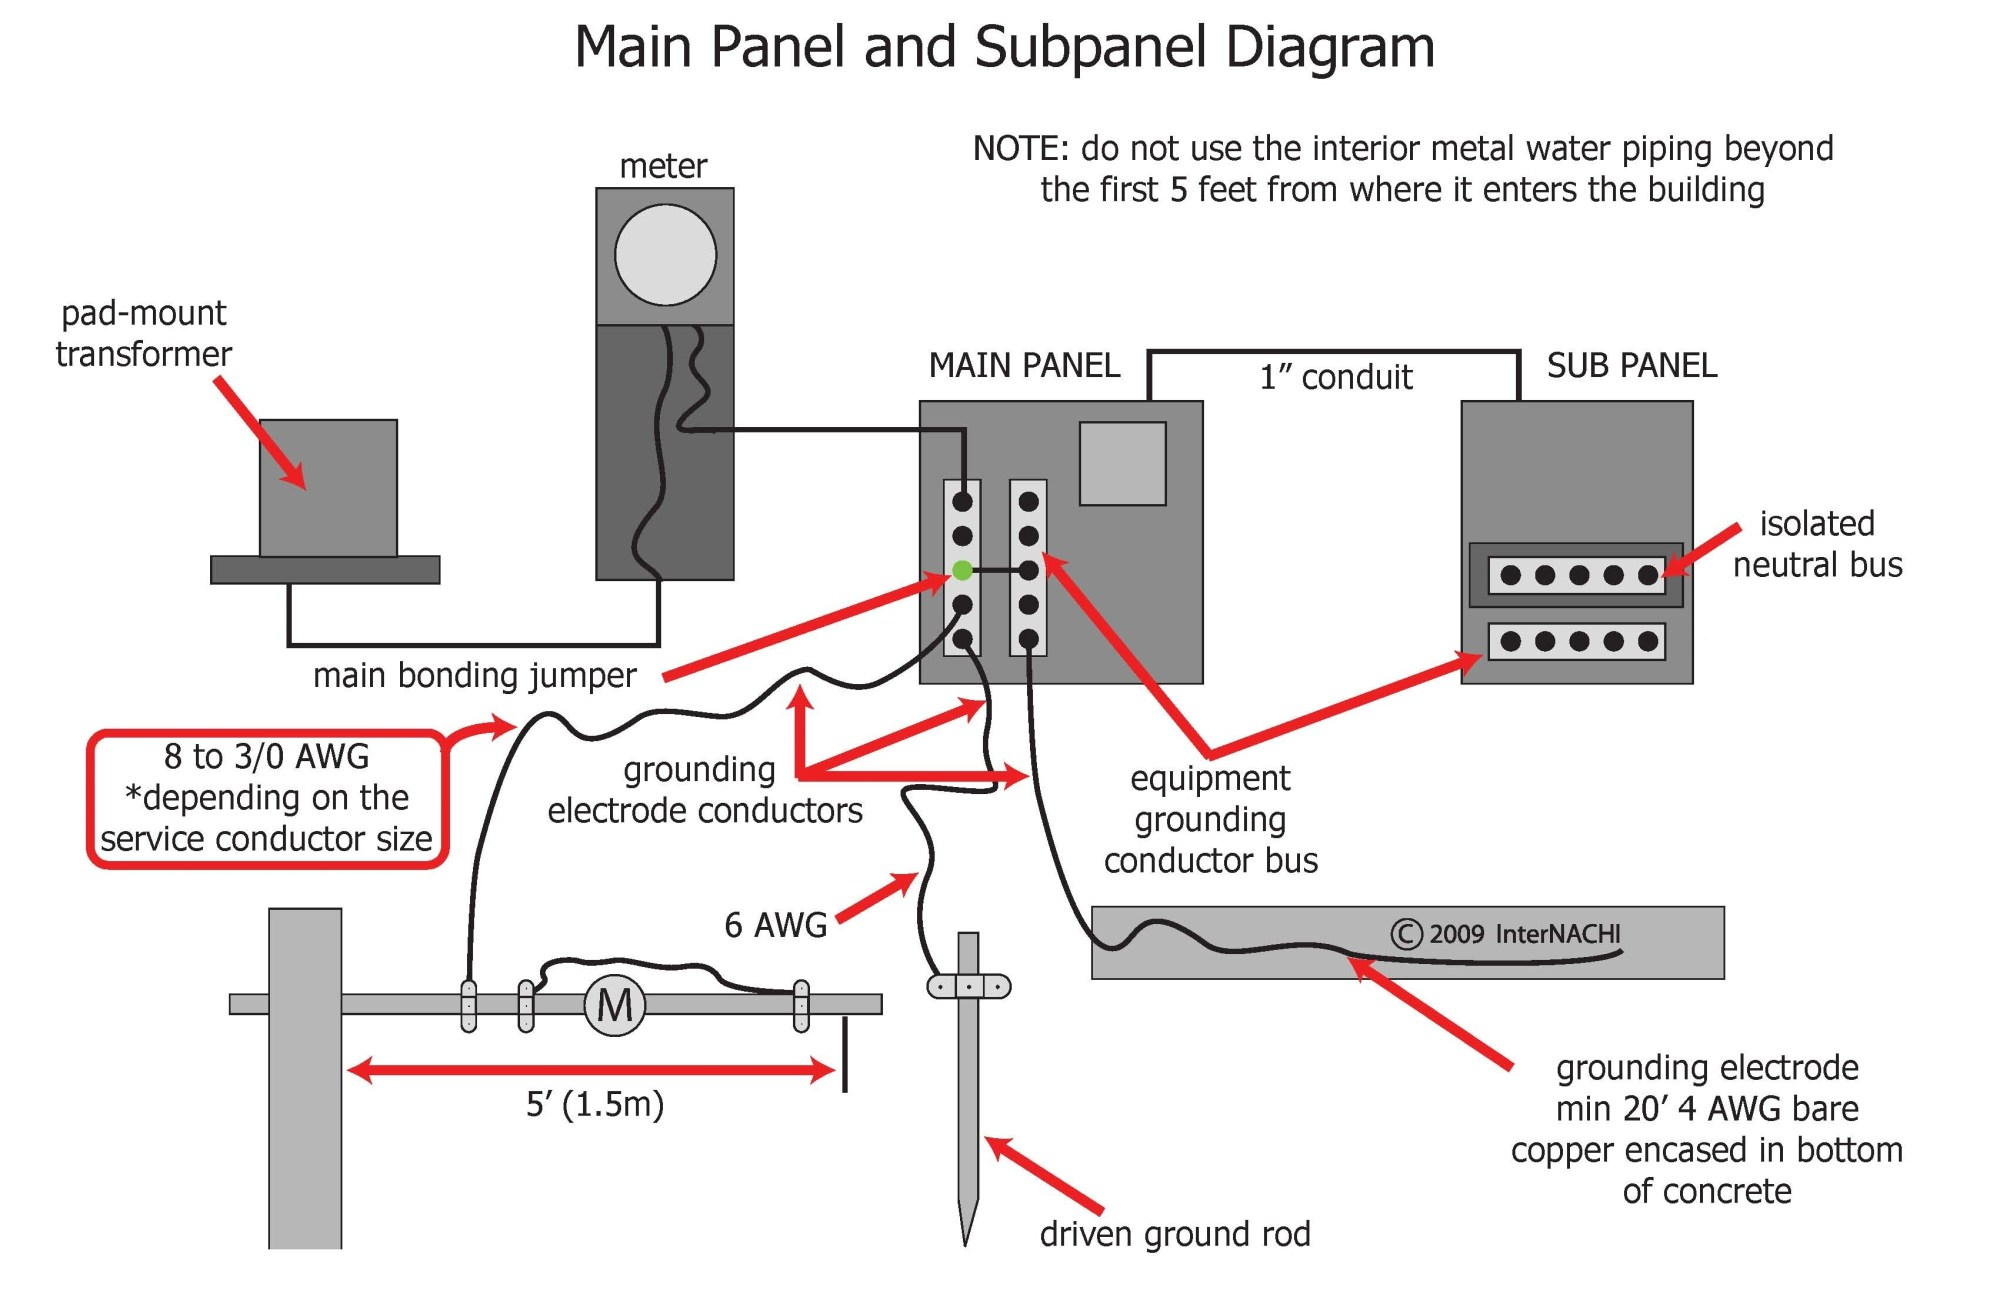 medium resolution of hight resolution of service panel diagram wiring diagram for you electrical circuit breaker panel diagram main